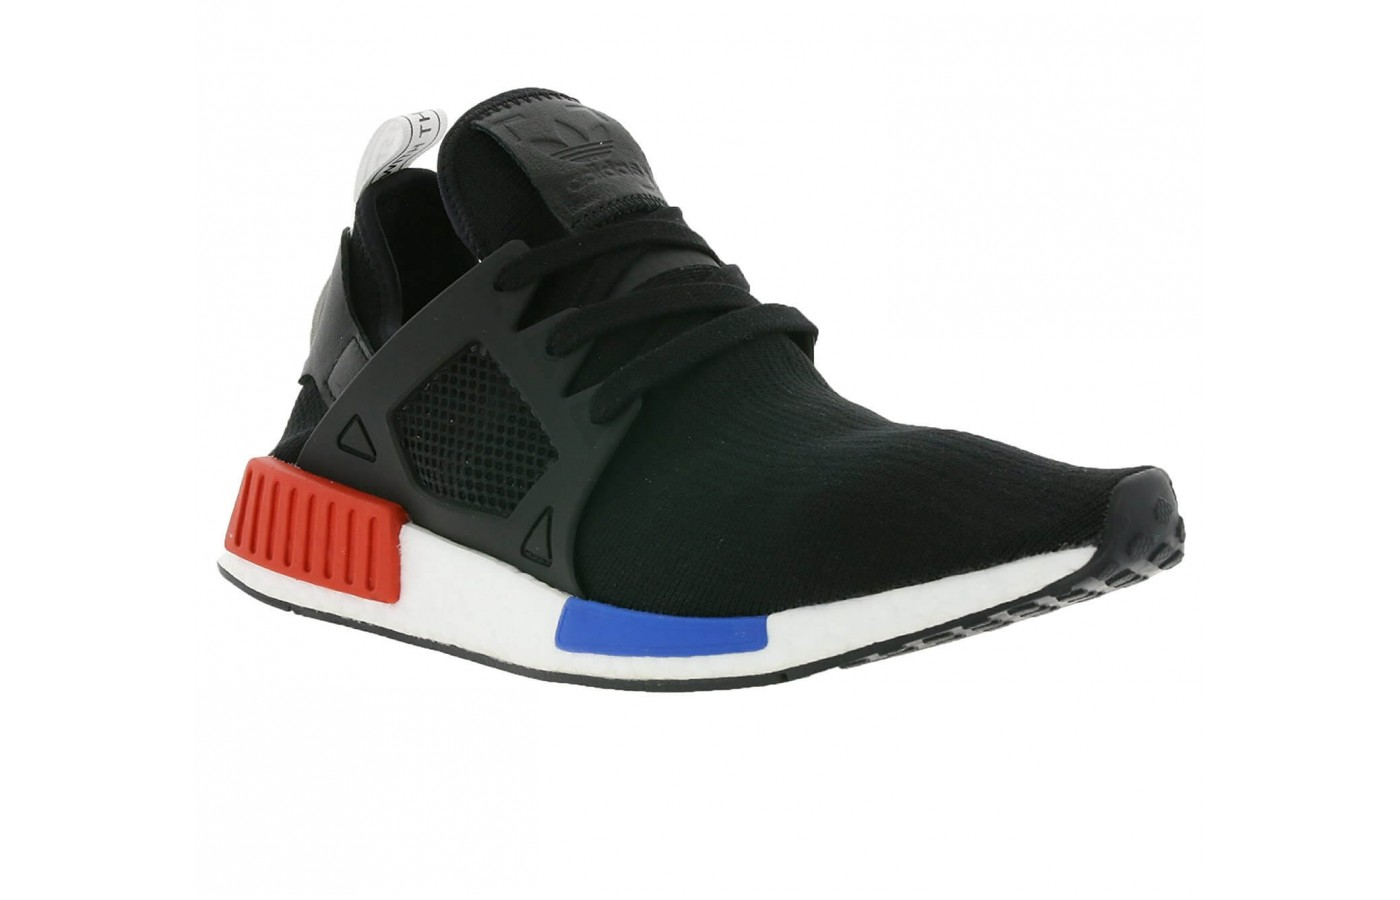 The Adidas NMD XR1 is a fashion statement first, a status symbol second, and a running shoe third.